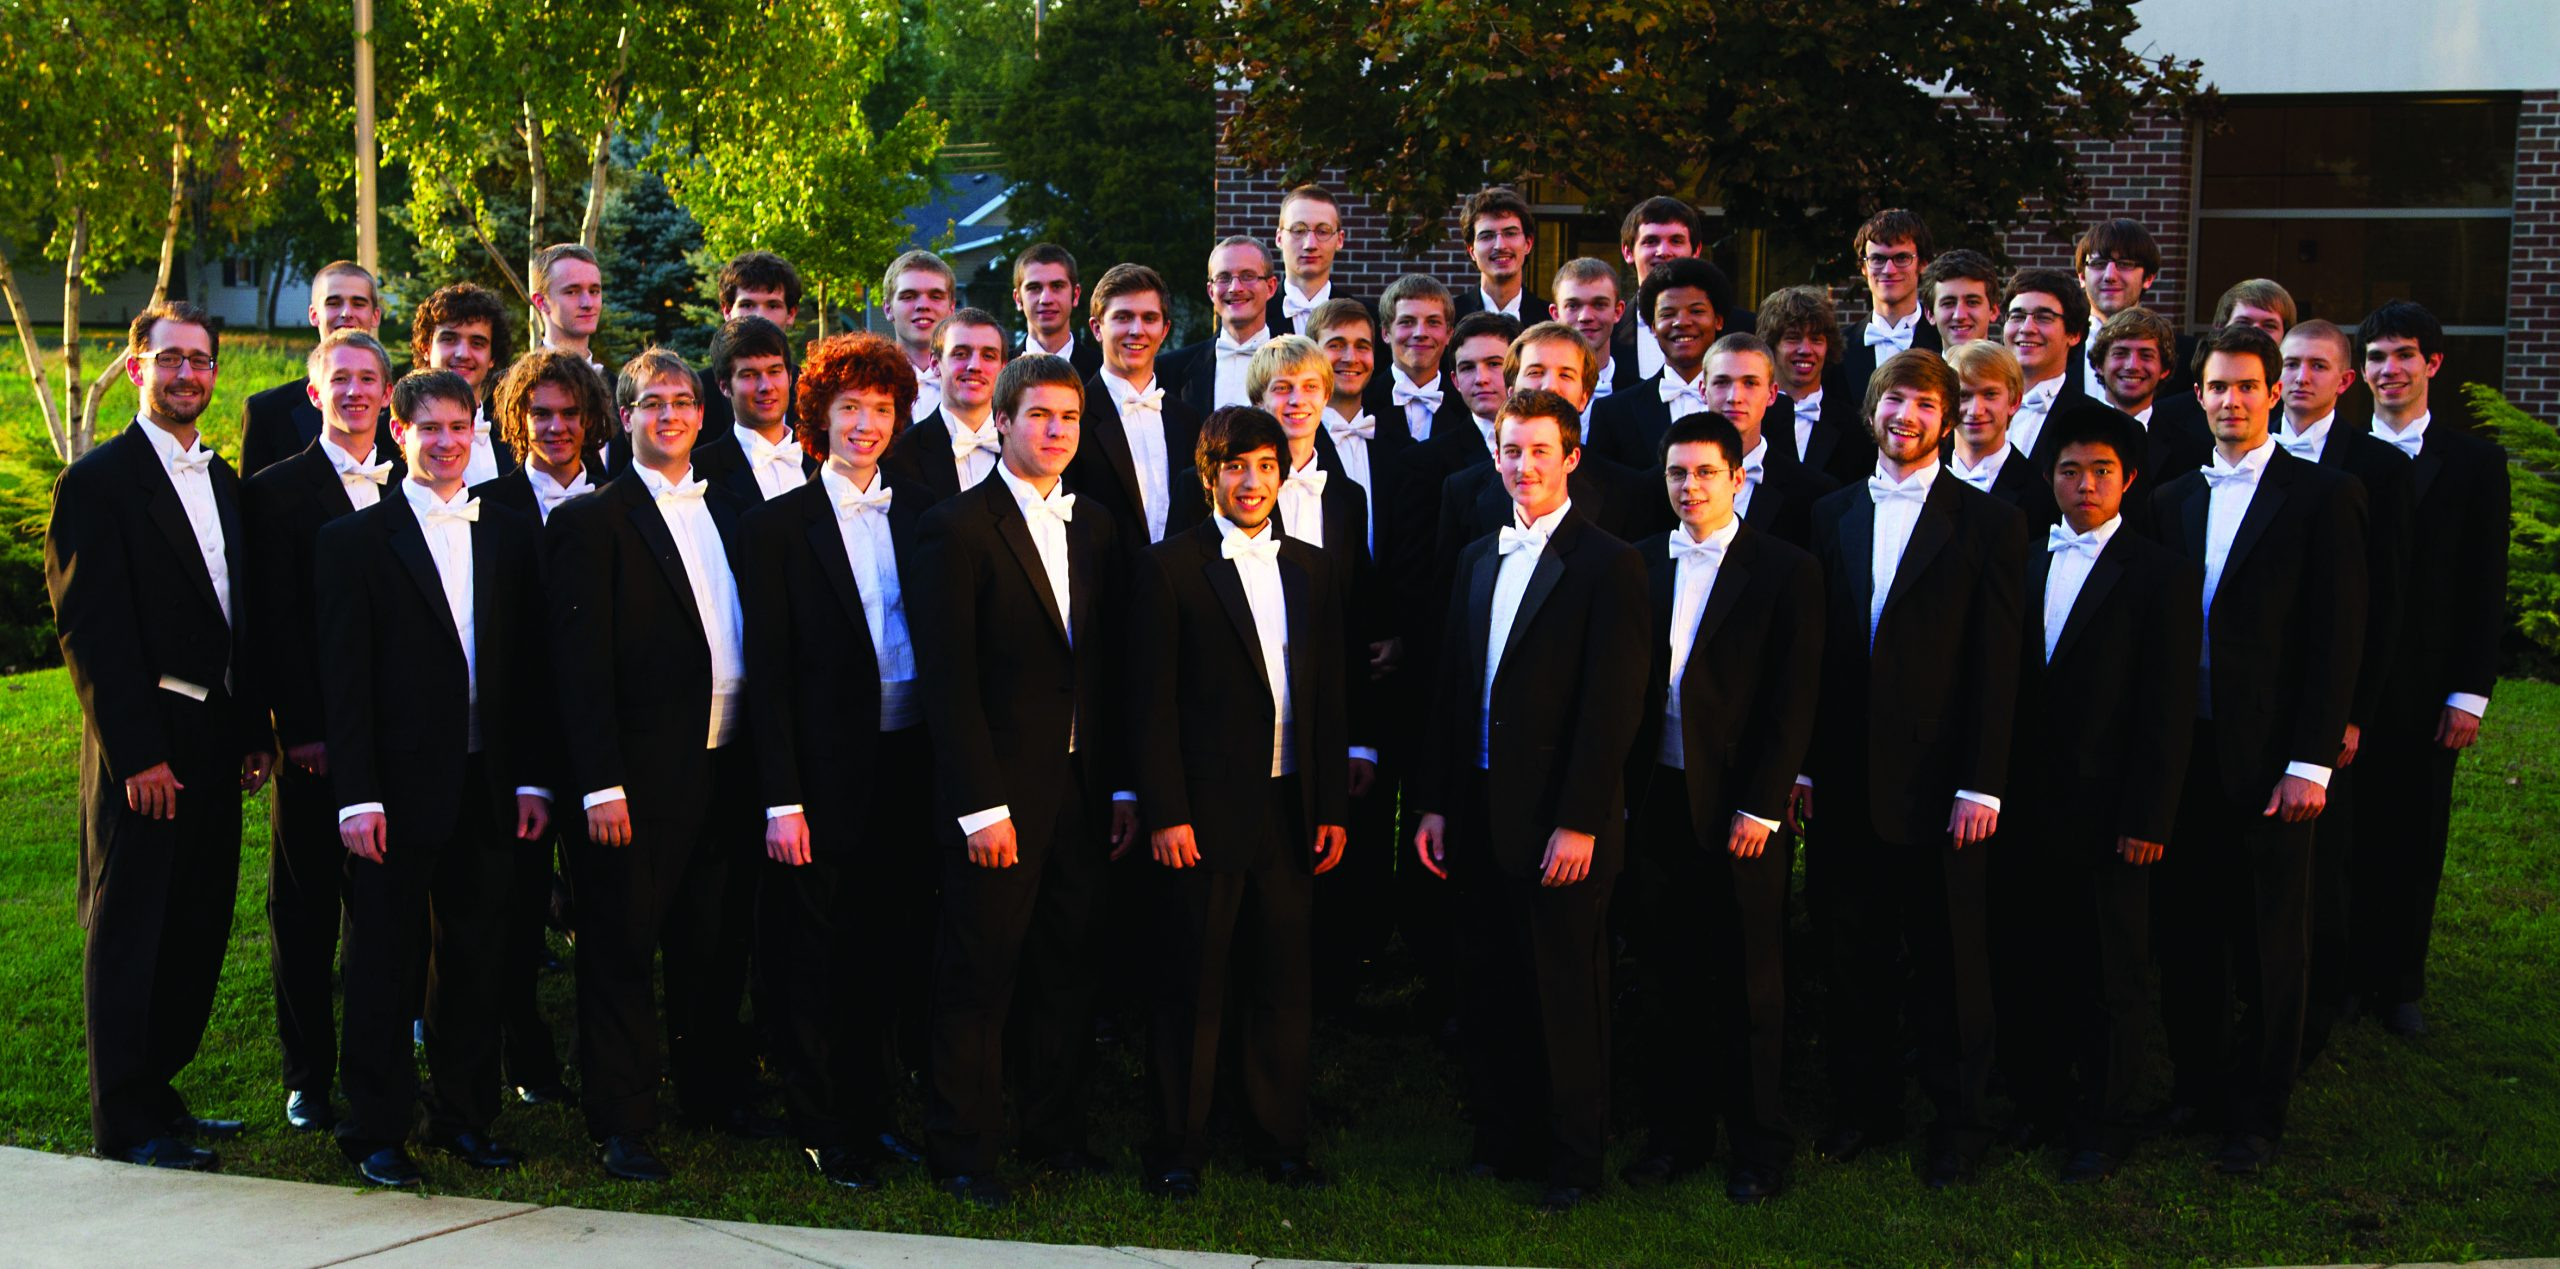 The Goshen Men's Choir poses for a picture